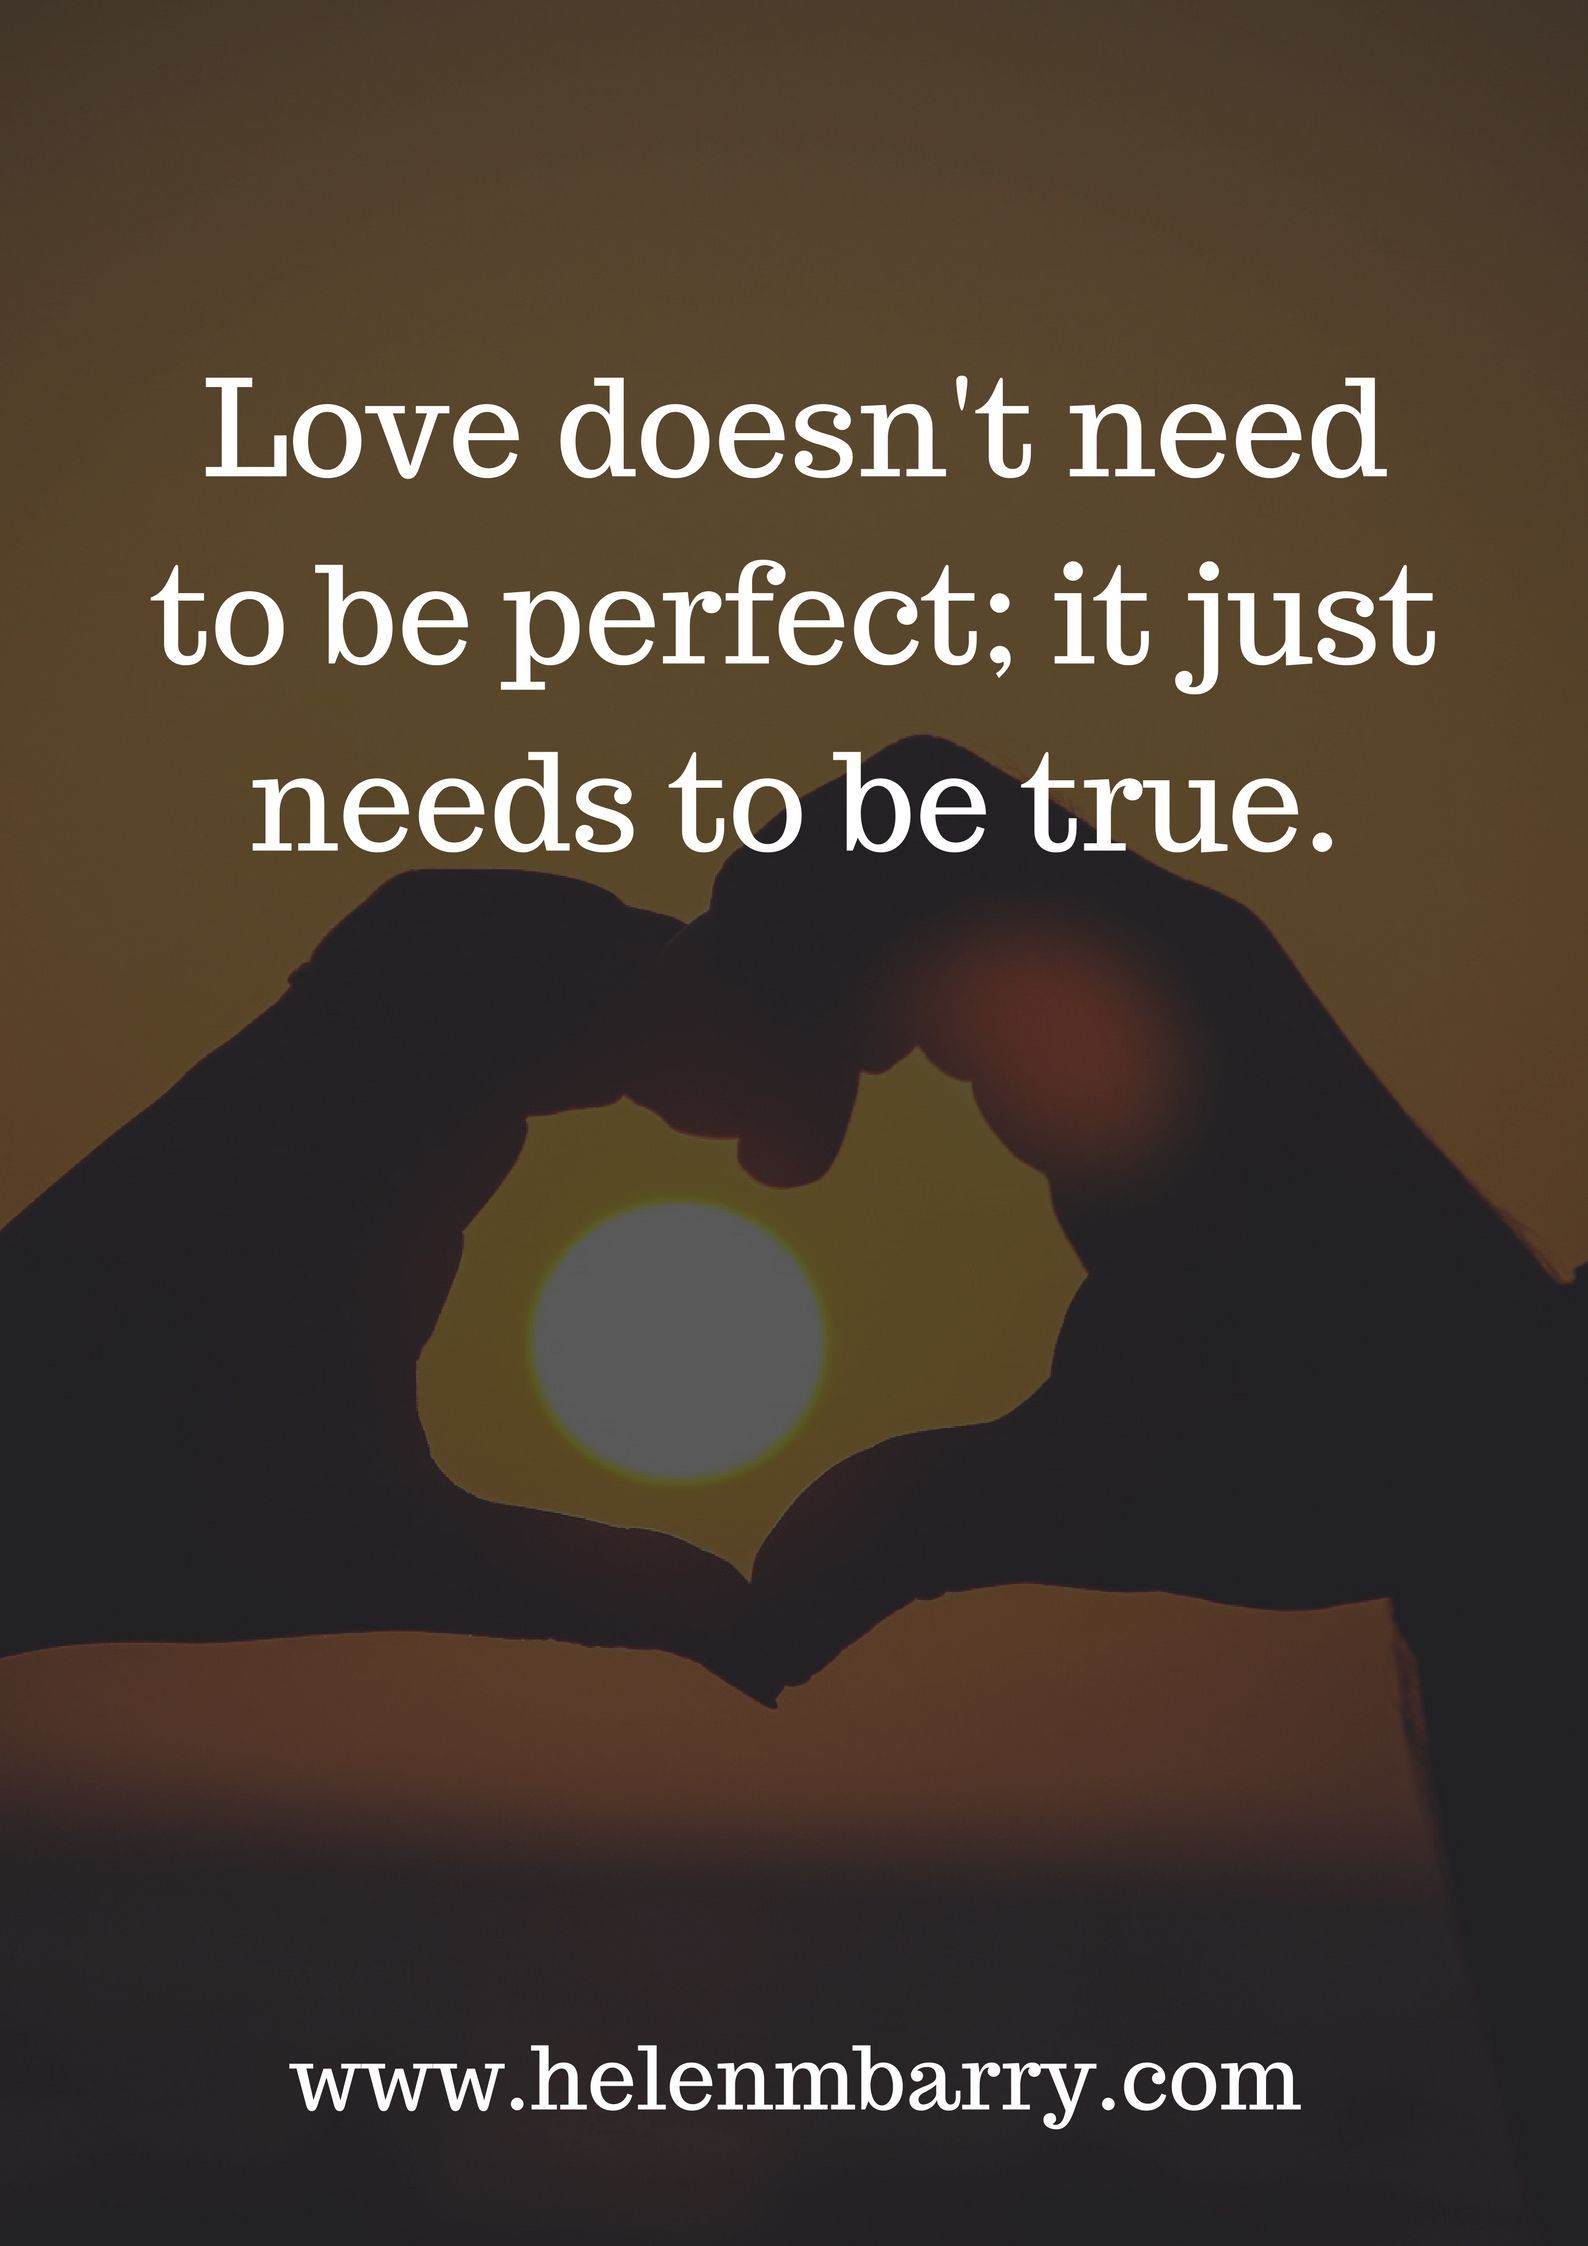 Pin By Holly Tyrrell On Love Pinterest Amor Frases And Quotes